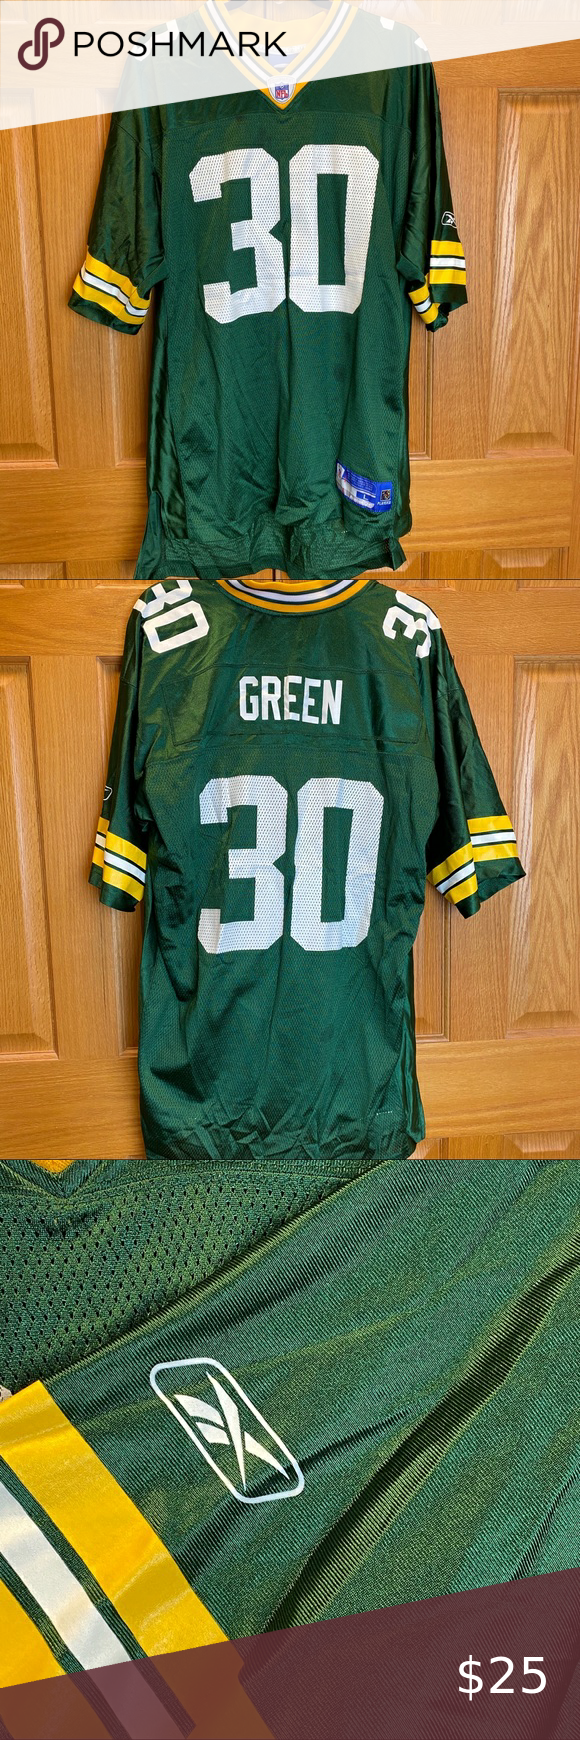 Reebok Nfl Green Bay Packers Ahman Green Jersey In 2020 Nfl Green Bay Green Bay Packers Ahman Green